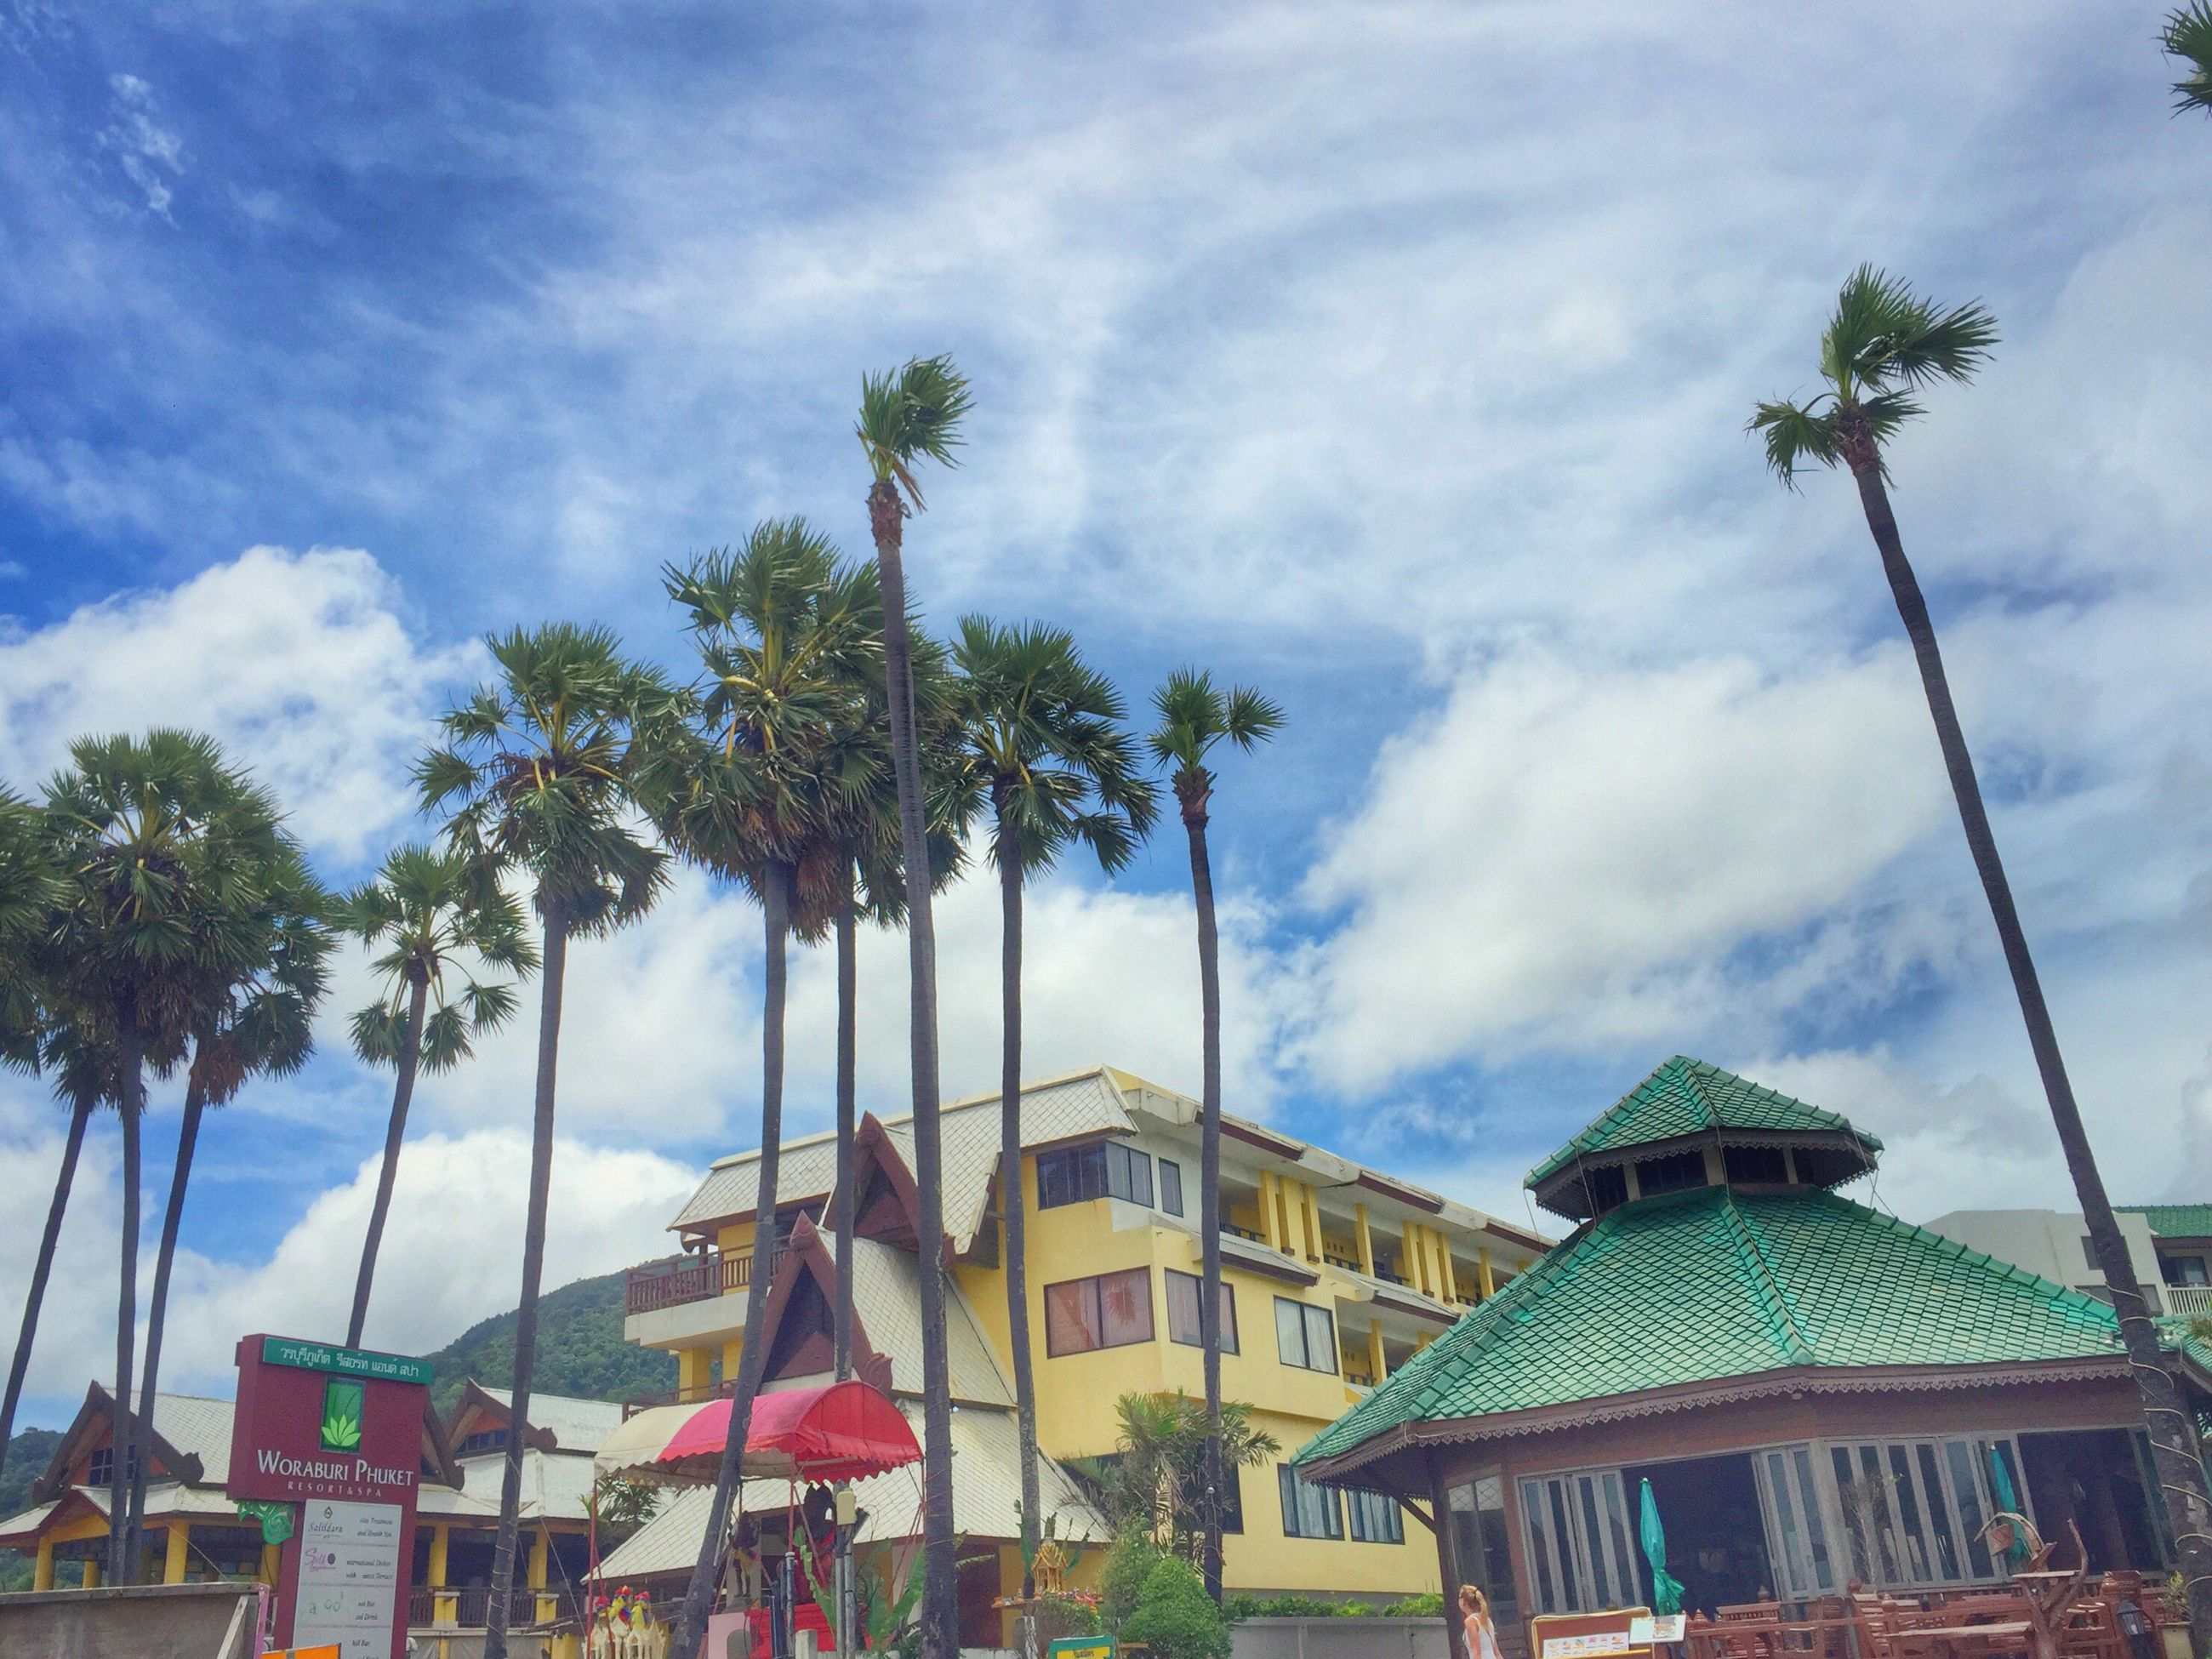 sky, architecture, built structure, tree, cloud - sky, low angle view, cloudy, palm tree, cloud, residential building, residential structure, day, outdoors, growth, nature, no people, overcast, weather, beauty in nature, blue, green color